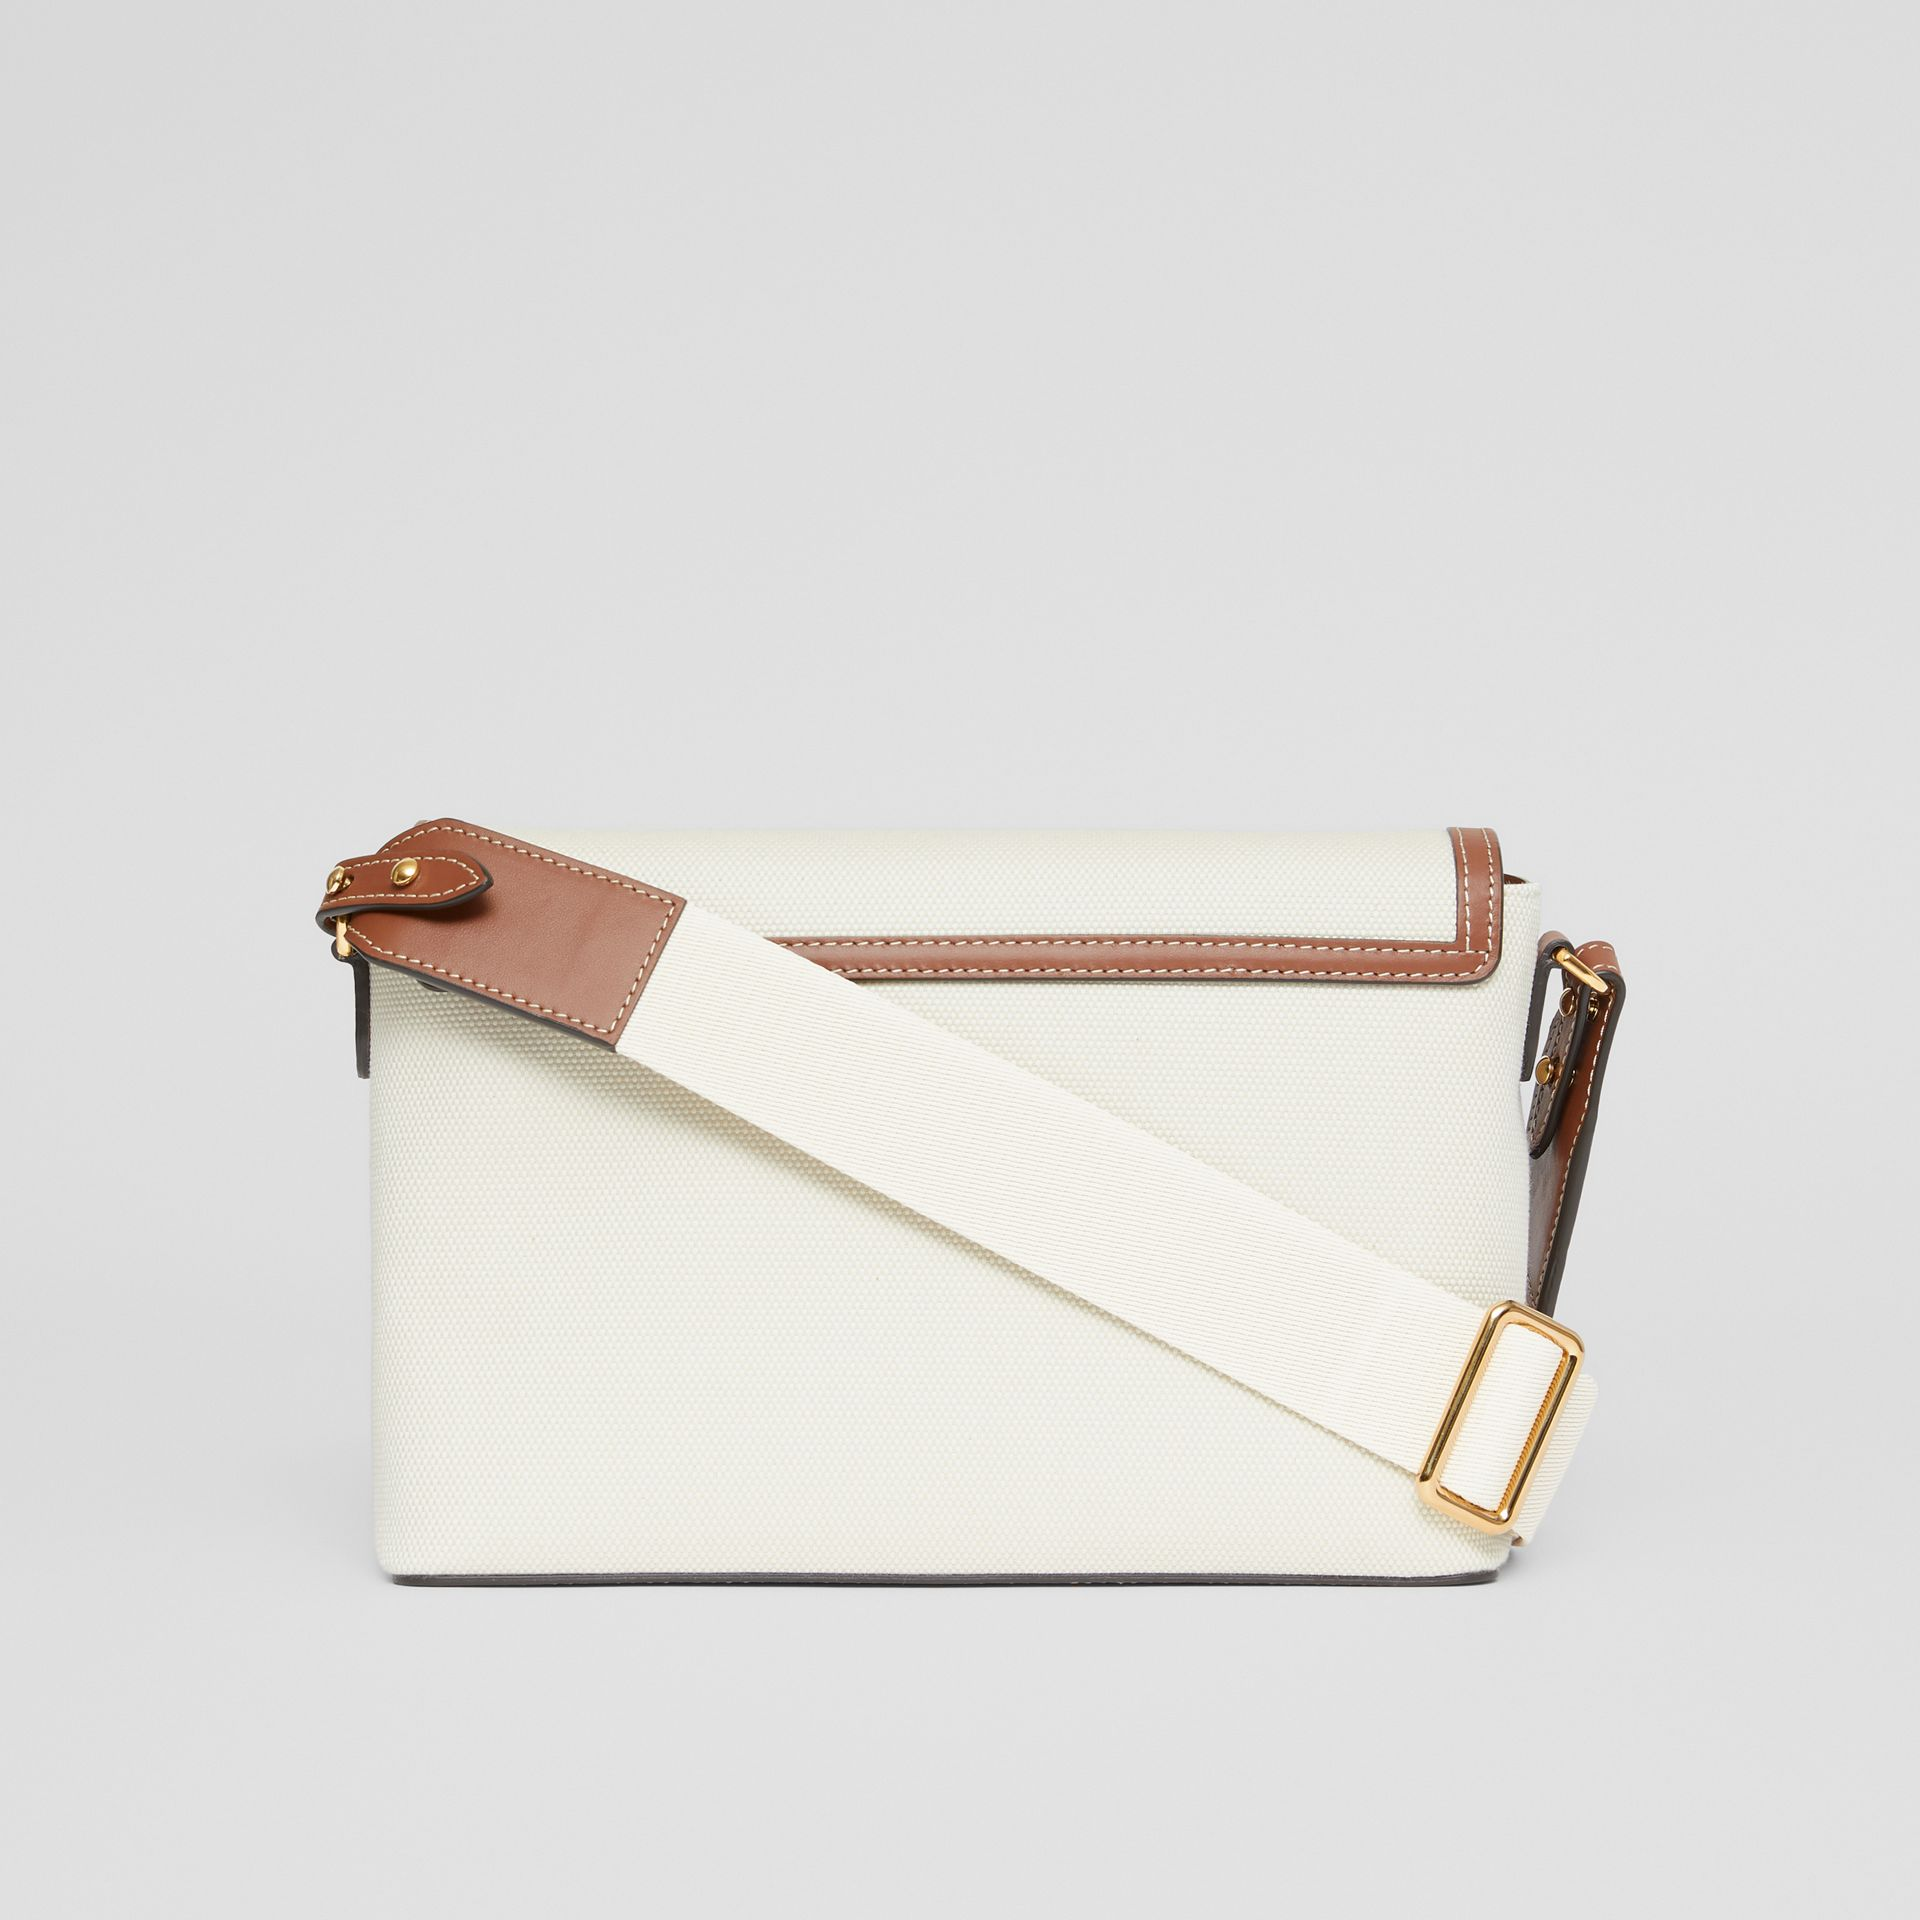 Horseferry Print Canvas Note Crossbody Bag in Natural/tan - Women | Burberry - gallery image 7